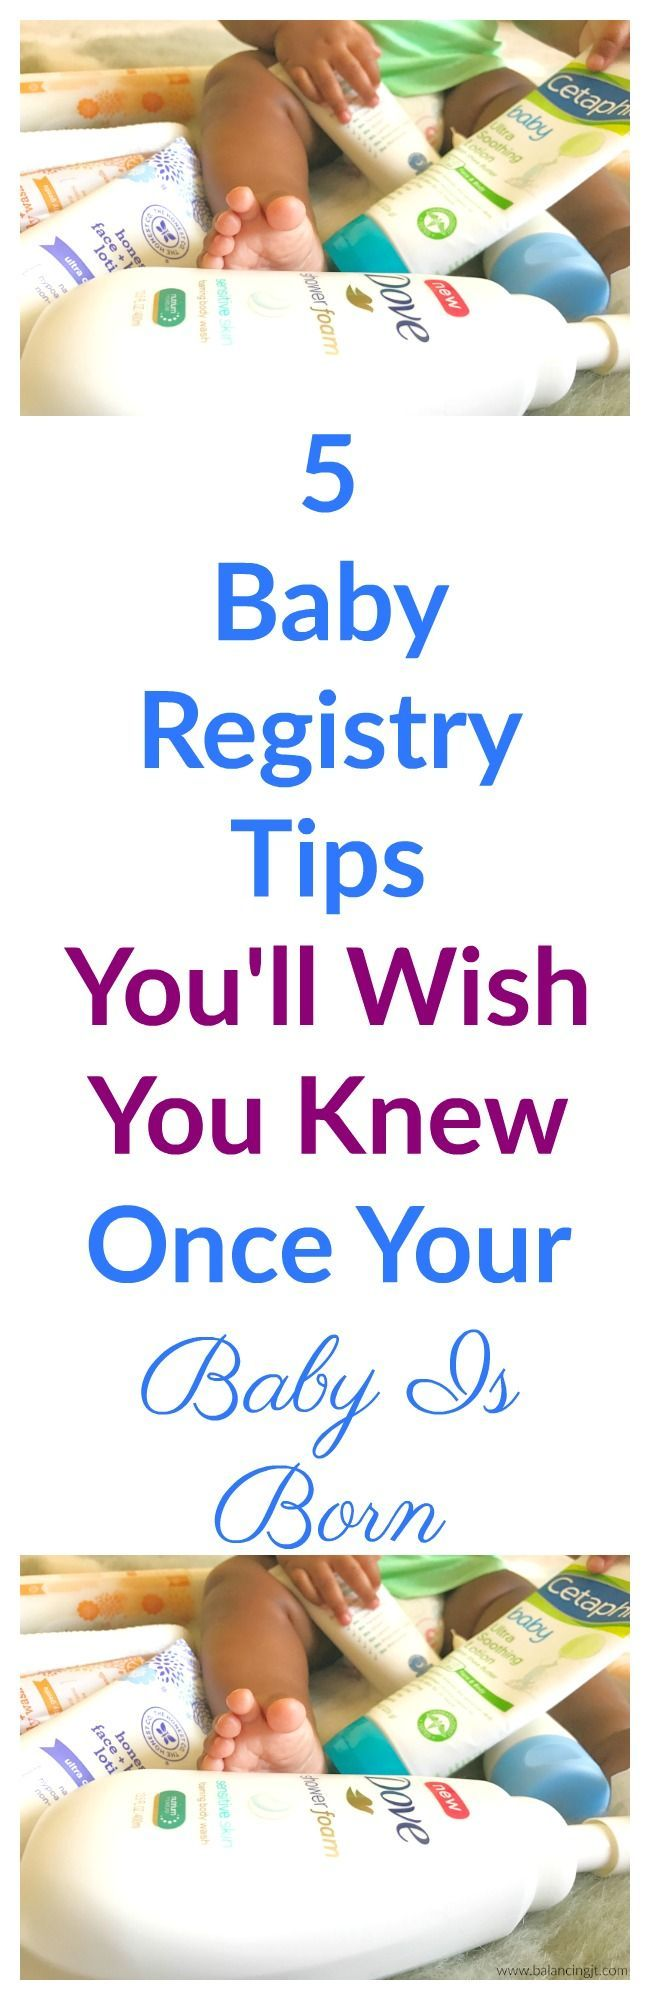 Here are a few baby registry tips, I wish I knew while I was building my registry that I quickly learned after my baby was born.